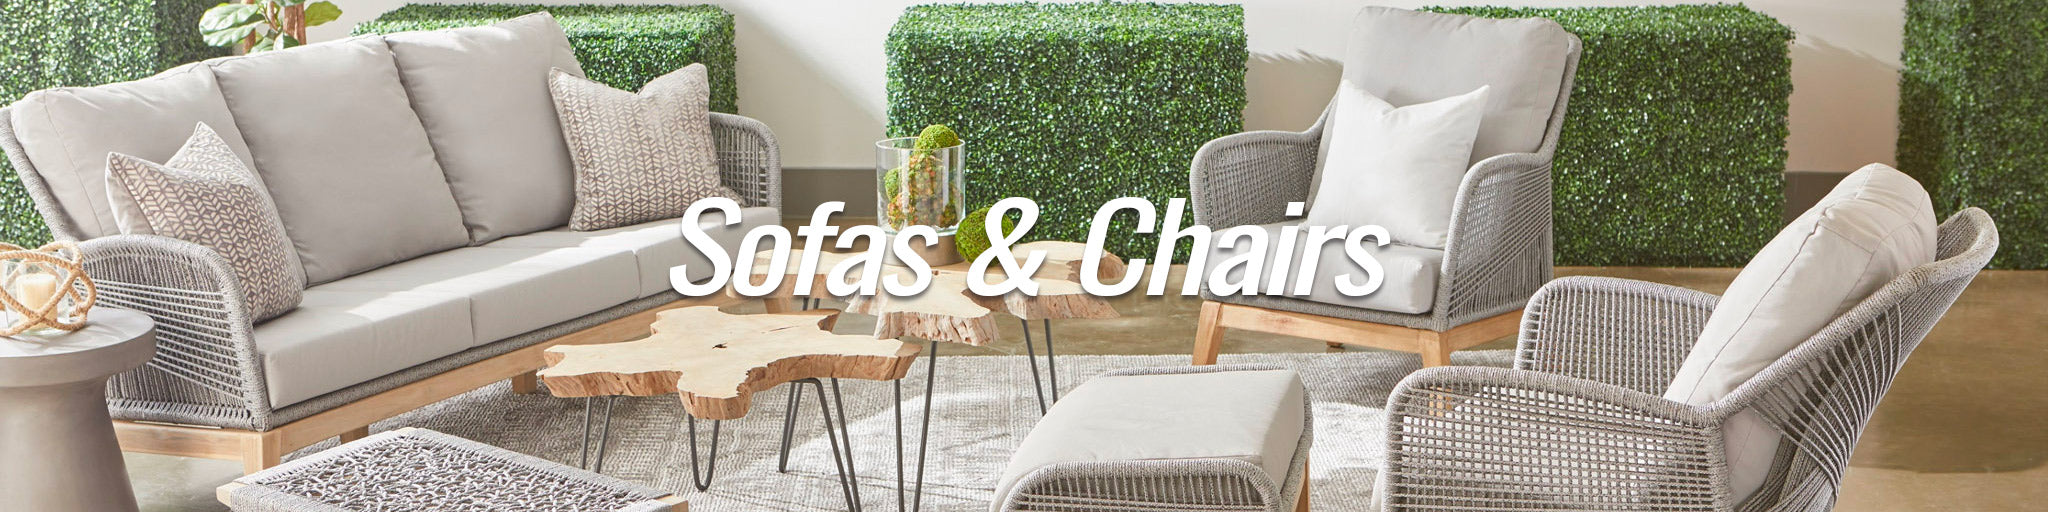 Outdoor Sofas & Chairs